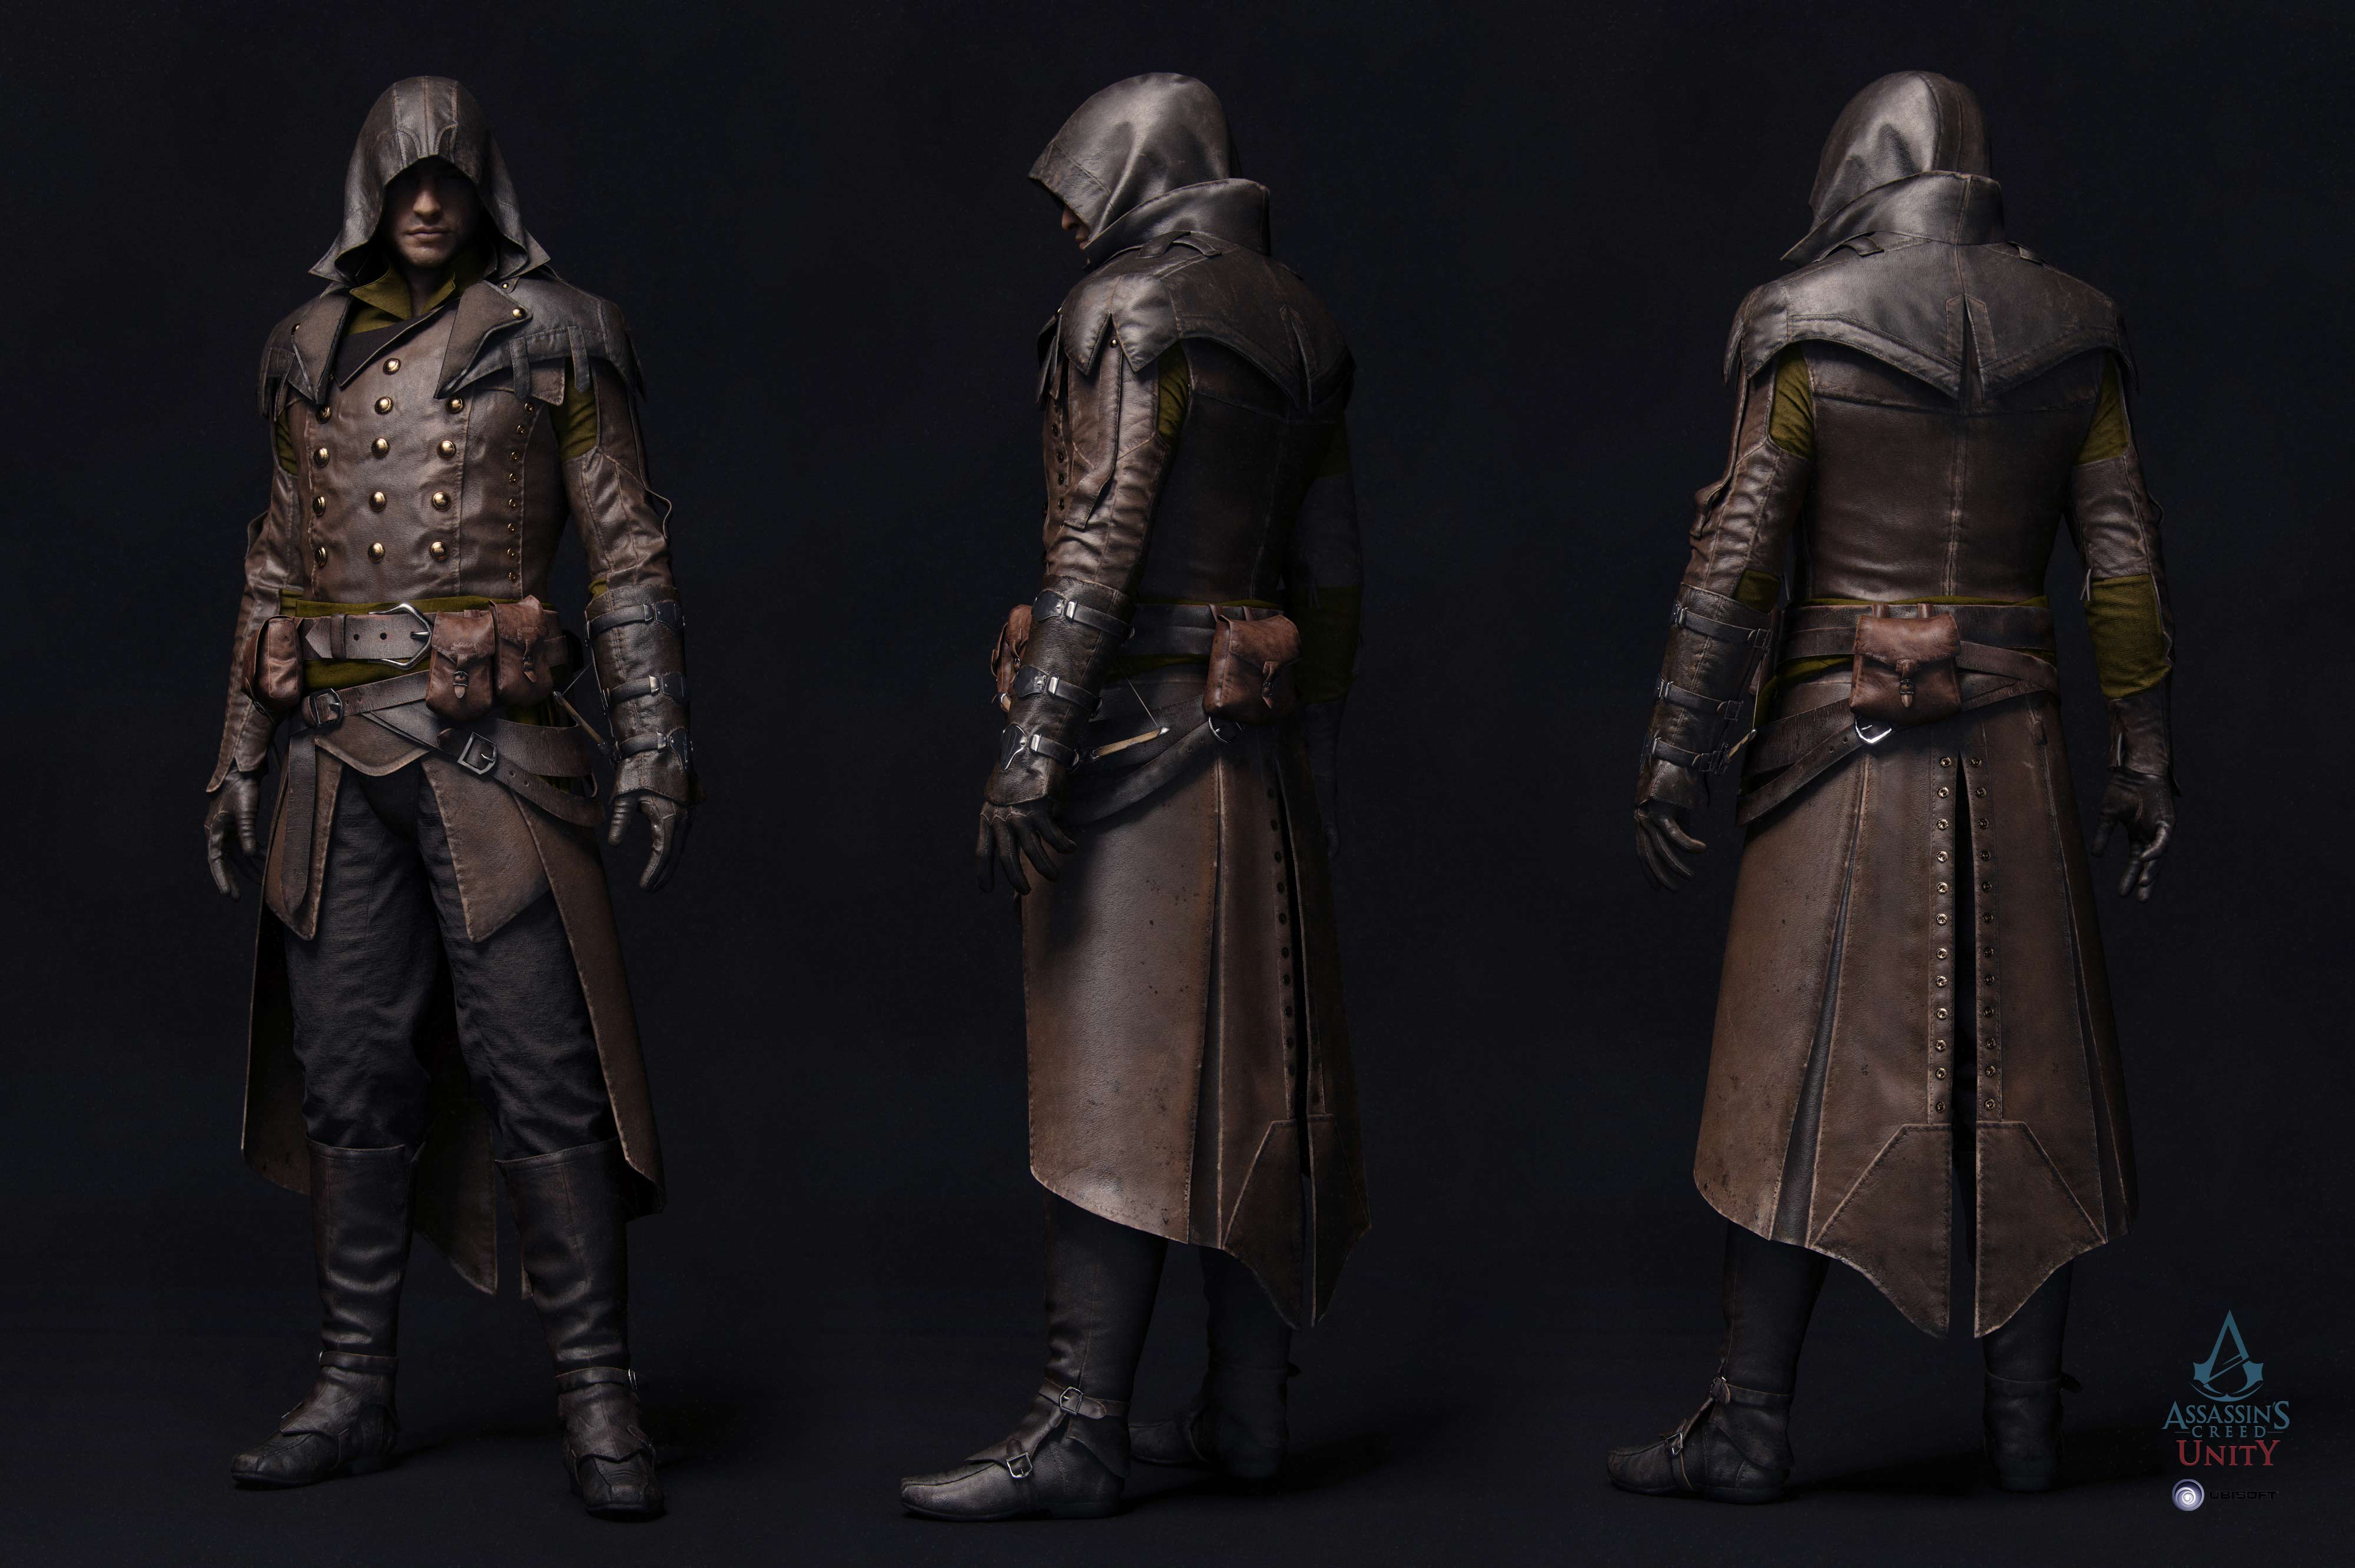 Character Design Unity : Assassin s creed unity characters